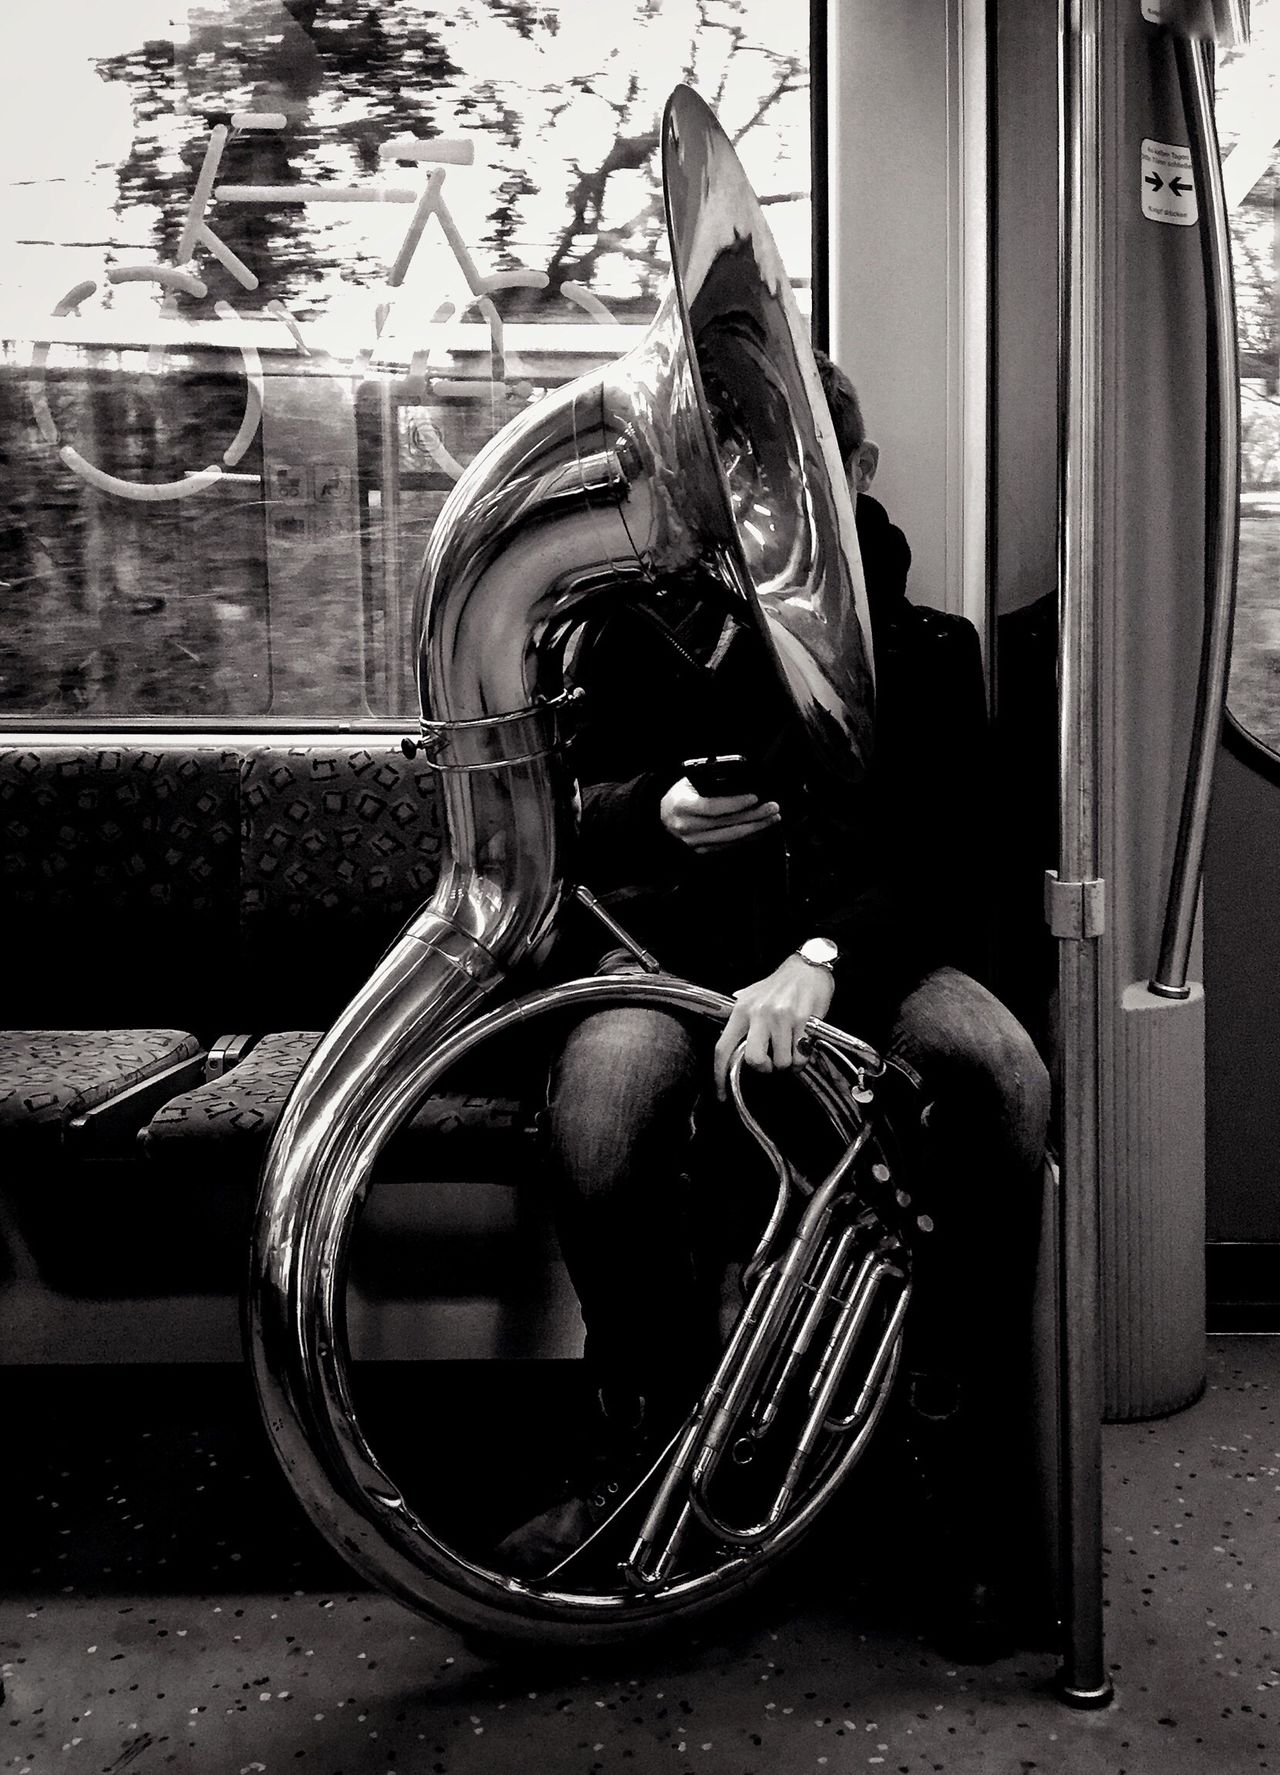 Streetphotography StreetPortraits Public Transportation Berlin Myfuckingberlin Blackandwhite Bnw Mpro Iphone6 Mobilephotography